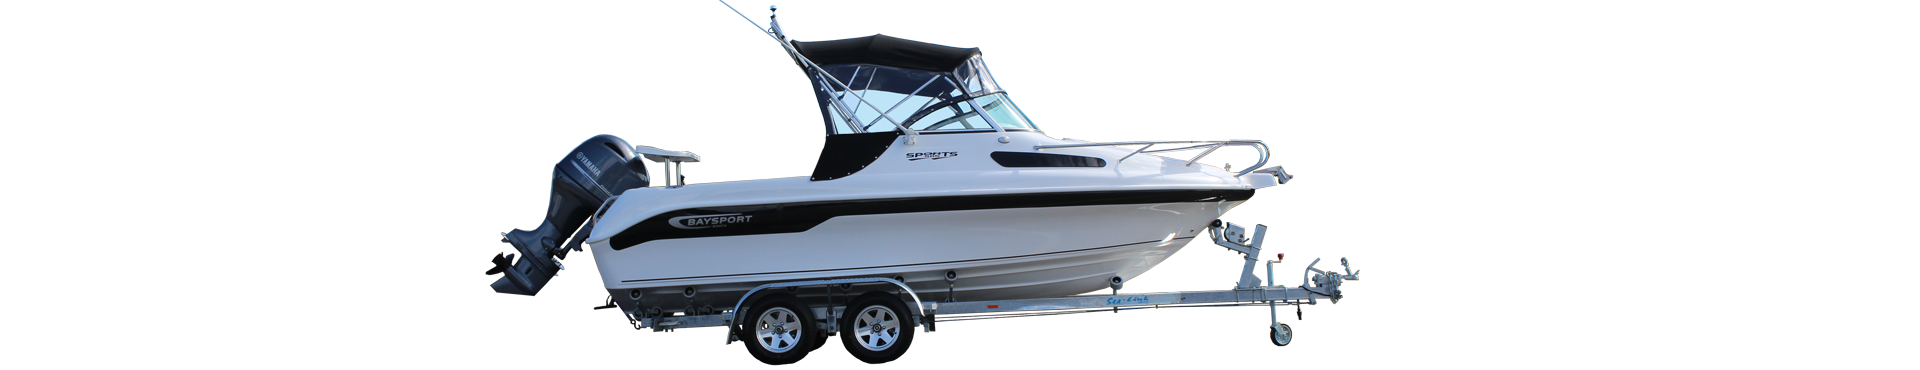 Baysport Boats 585 Sports